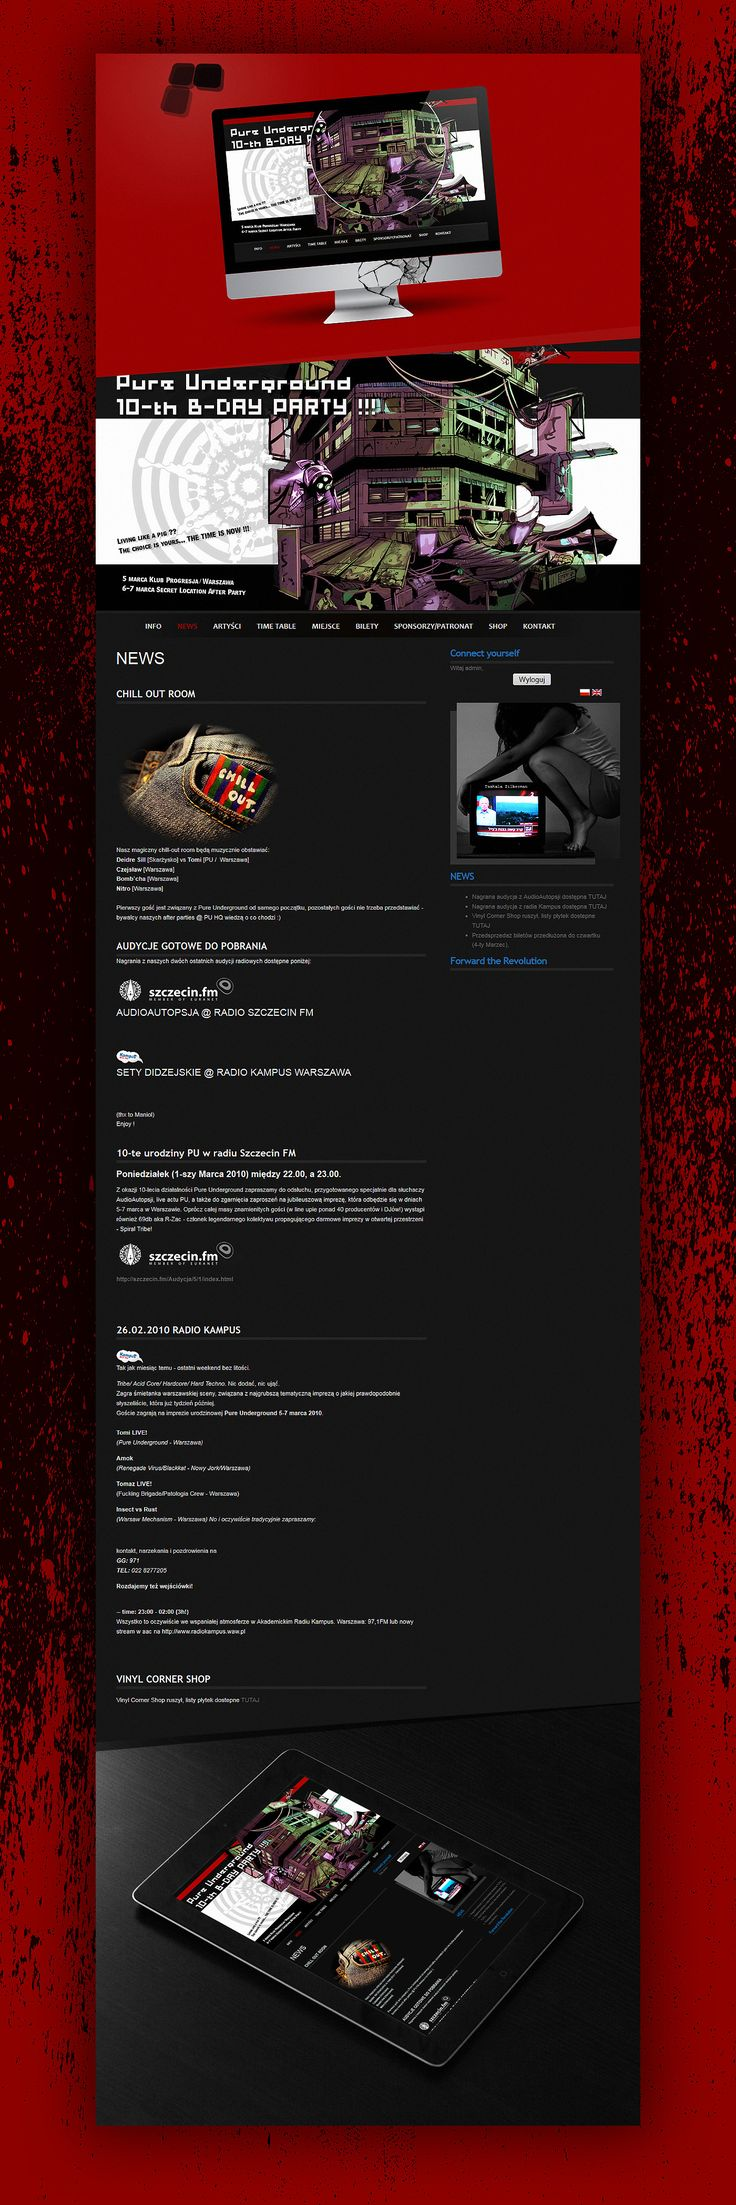 On the occasion of the 10th birthday of our collective, in March 2010 we organized a party at the club Progresja in Warsaw. Next day, the most persistent guests could taste vibe of the most underground and mysterious after party in capital. We designed all promo materials for this event and whole work was inspired by cyberpunk culture. Webpage has been made using Joomla CMS.